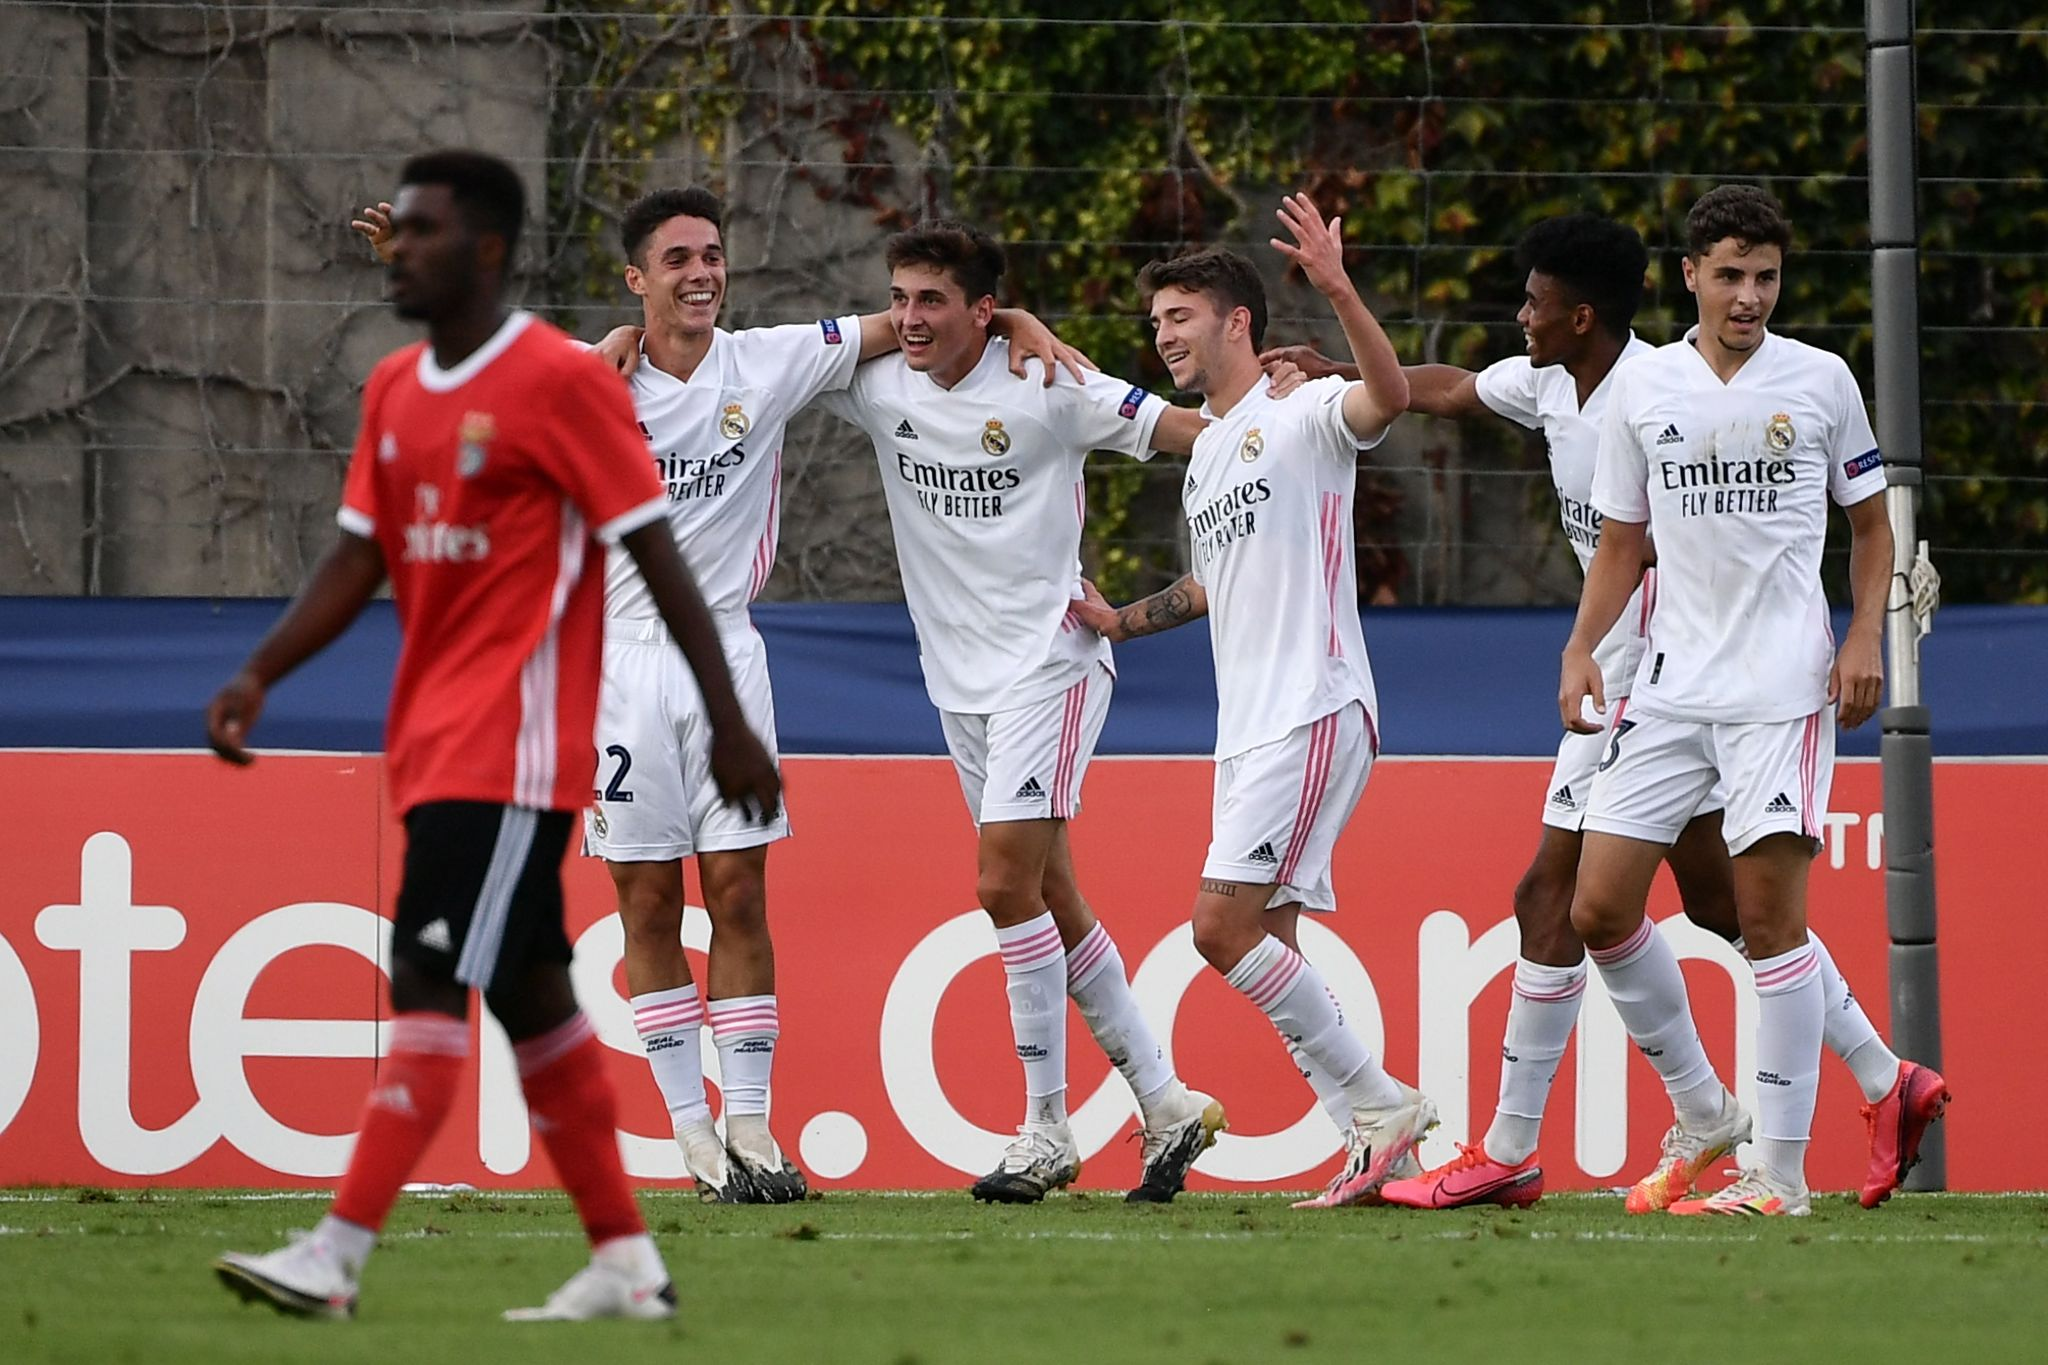 Real Madrids players celebrates as Benficas goalkeeper Leobrian Kokubo receives an own goal during the football UEFA lt;HIT gt;Youth lt;/HIT gt; League 2019/2020 final between Benfica and Real Madrid on August 25, 2020 in Nyon. (Photo by Fabrice COFFRINI / AFP)